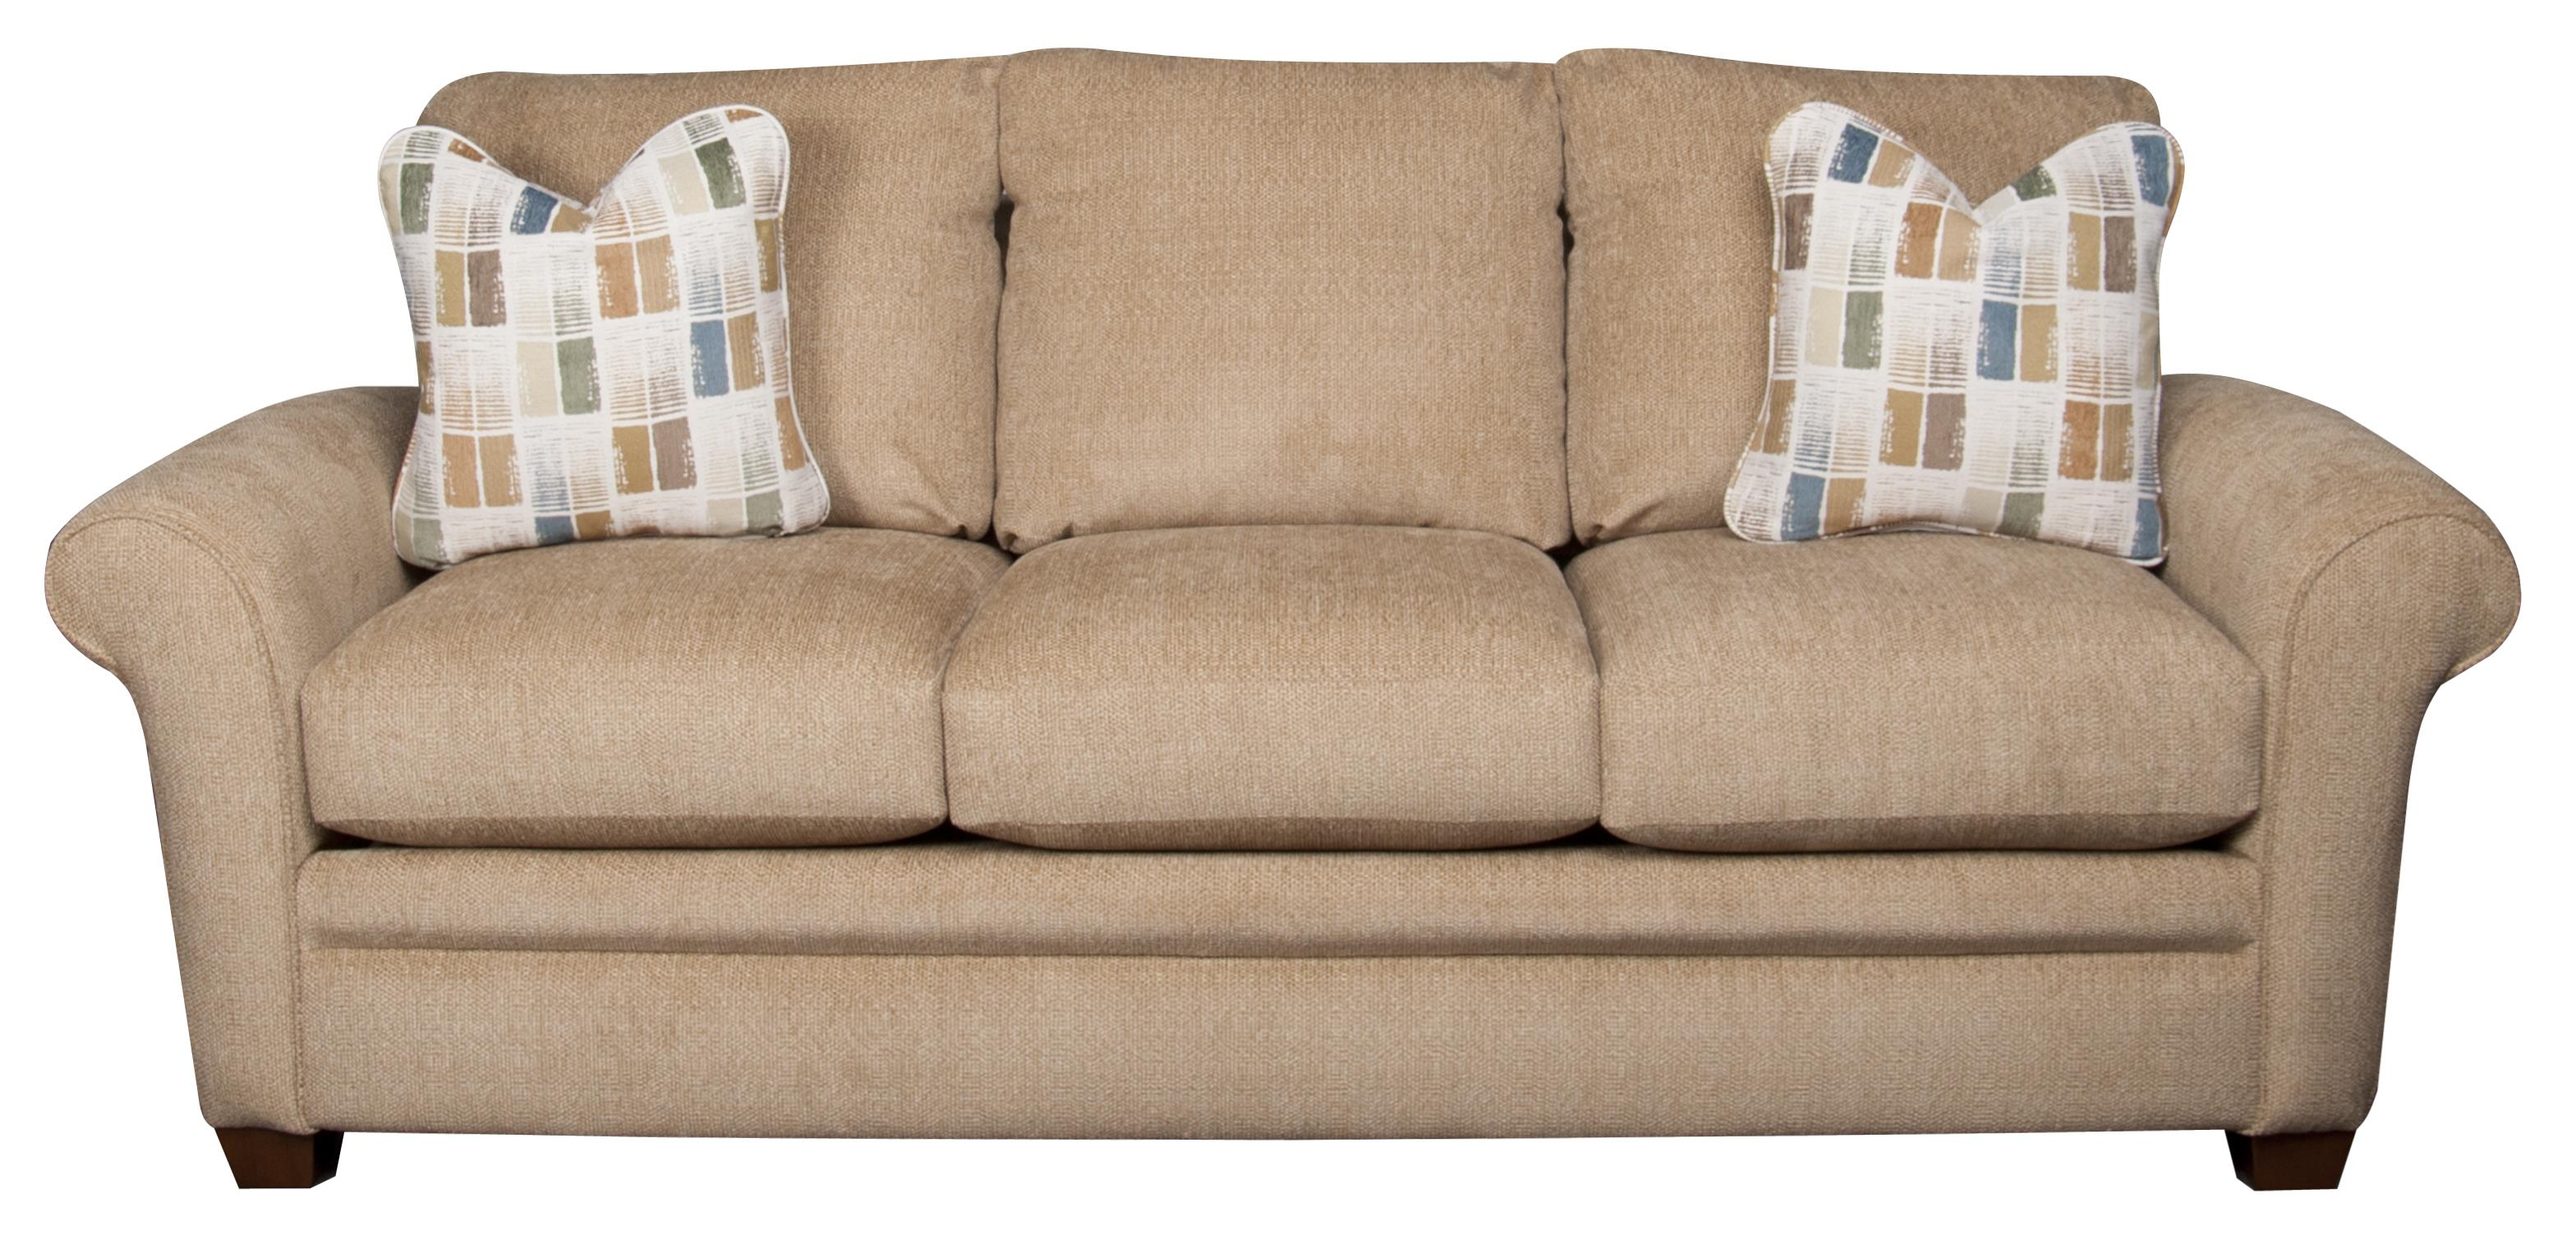 La-Z-Boy Natalie Natalie Sofa - Item Number: 808399375